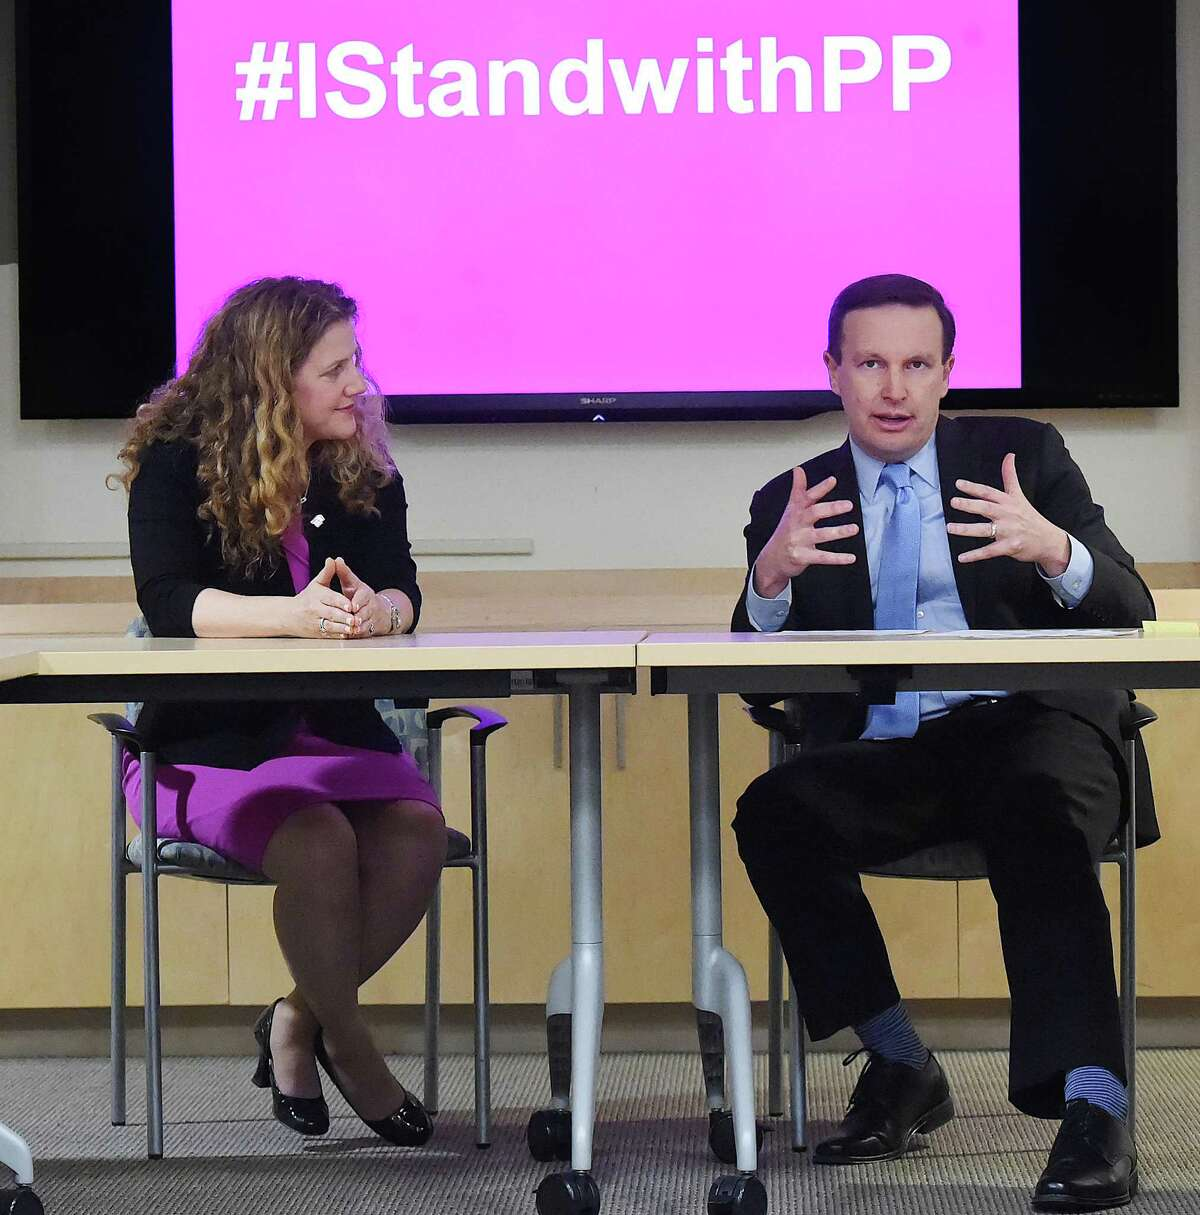 Amanda Skinner, president and CEO of Planned Parenthood of Southern New England, listens to U.S. Sen. Chris Murphy speak at a roundtable discussion Thursday in New Haven.